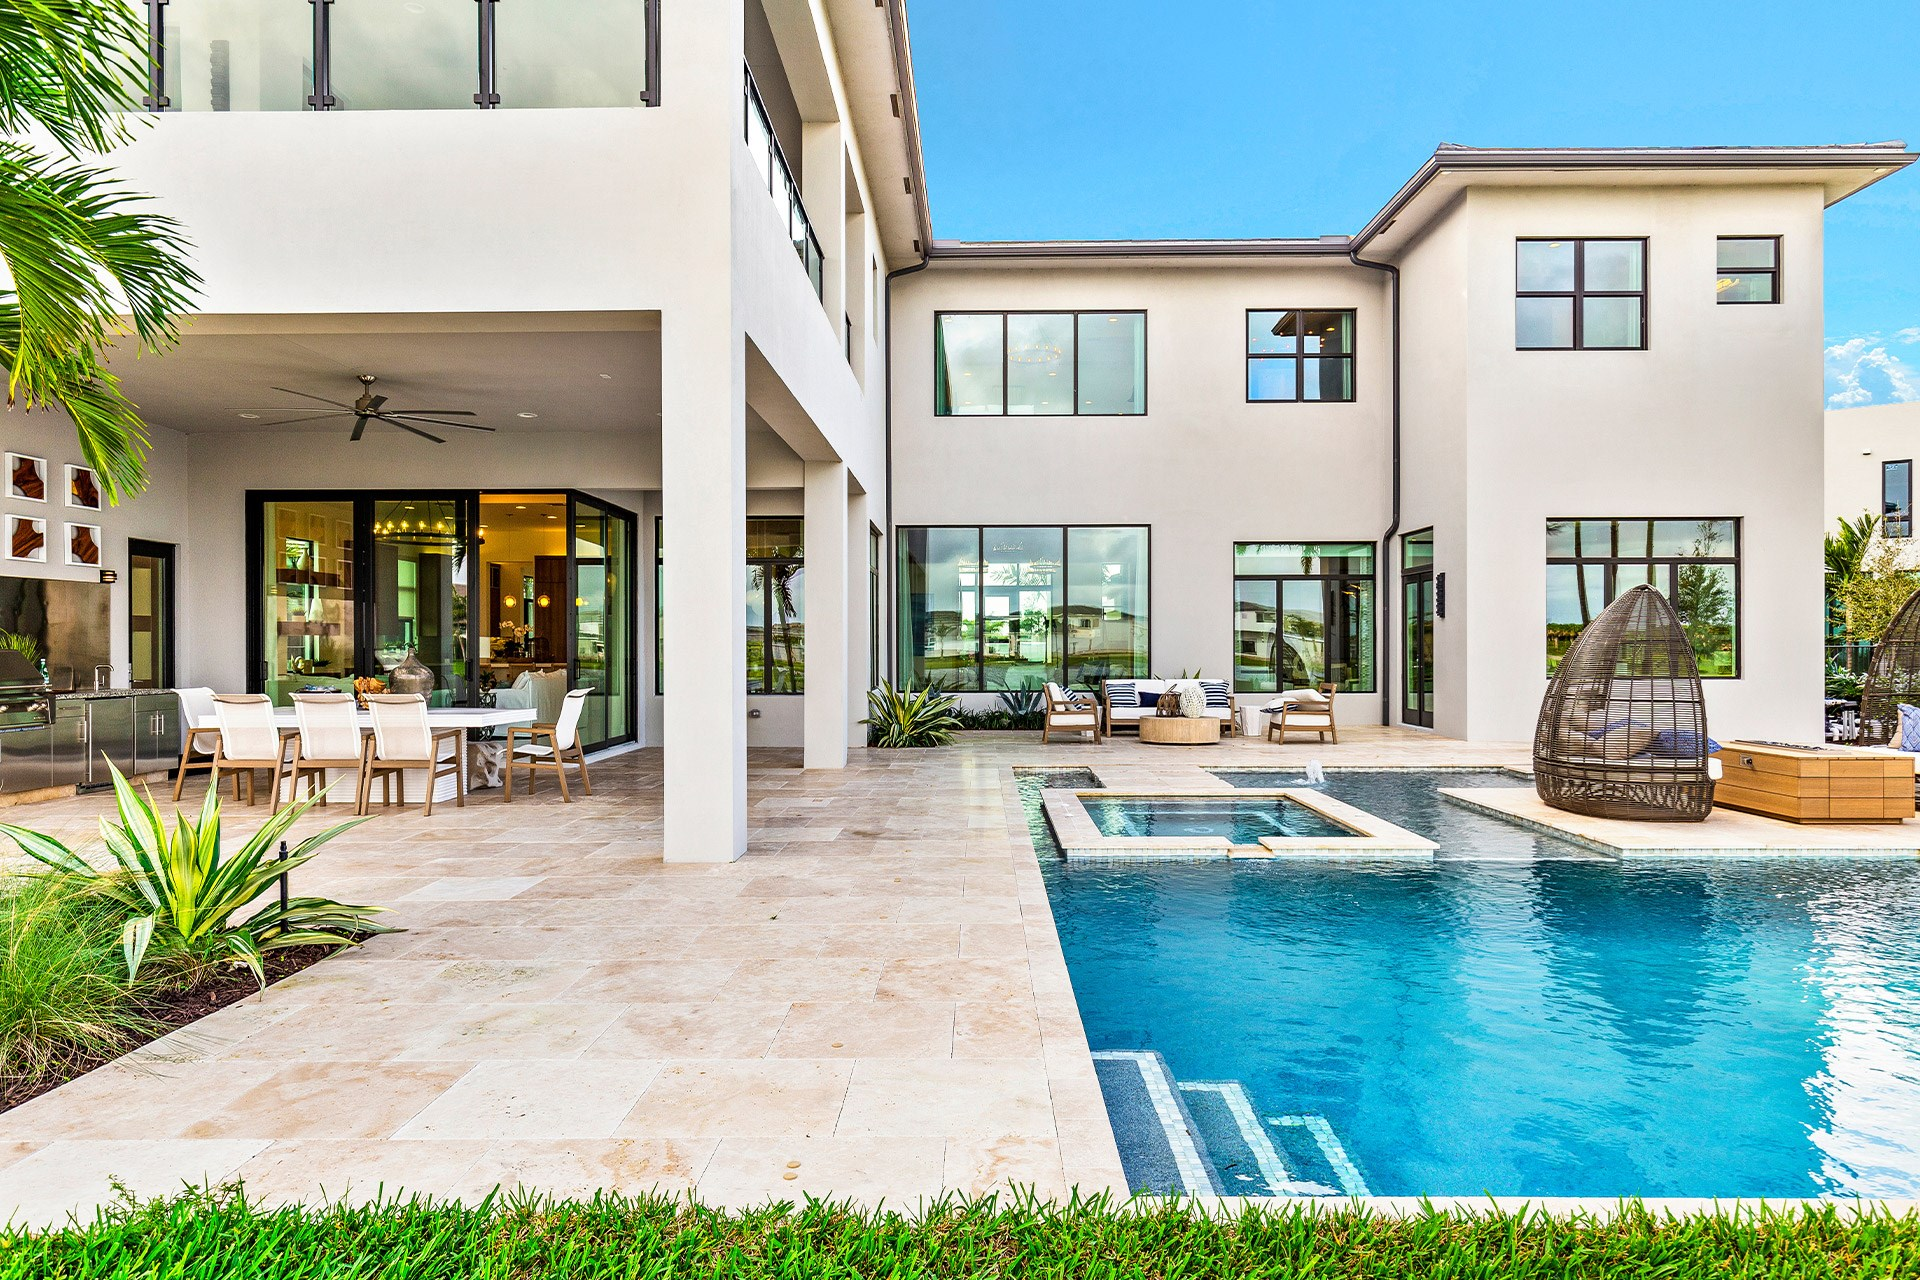 EXPANSIVE OUTDOOR LIVING